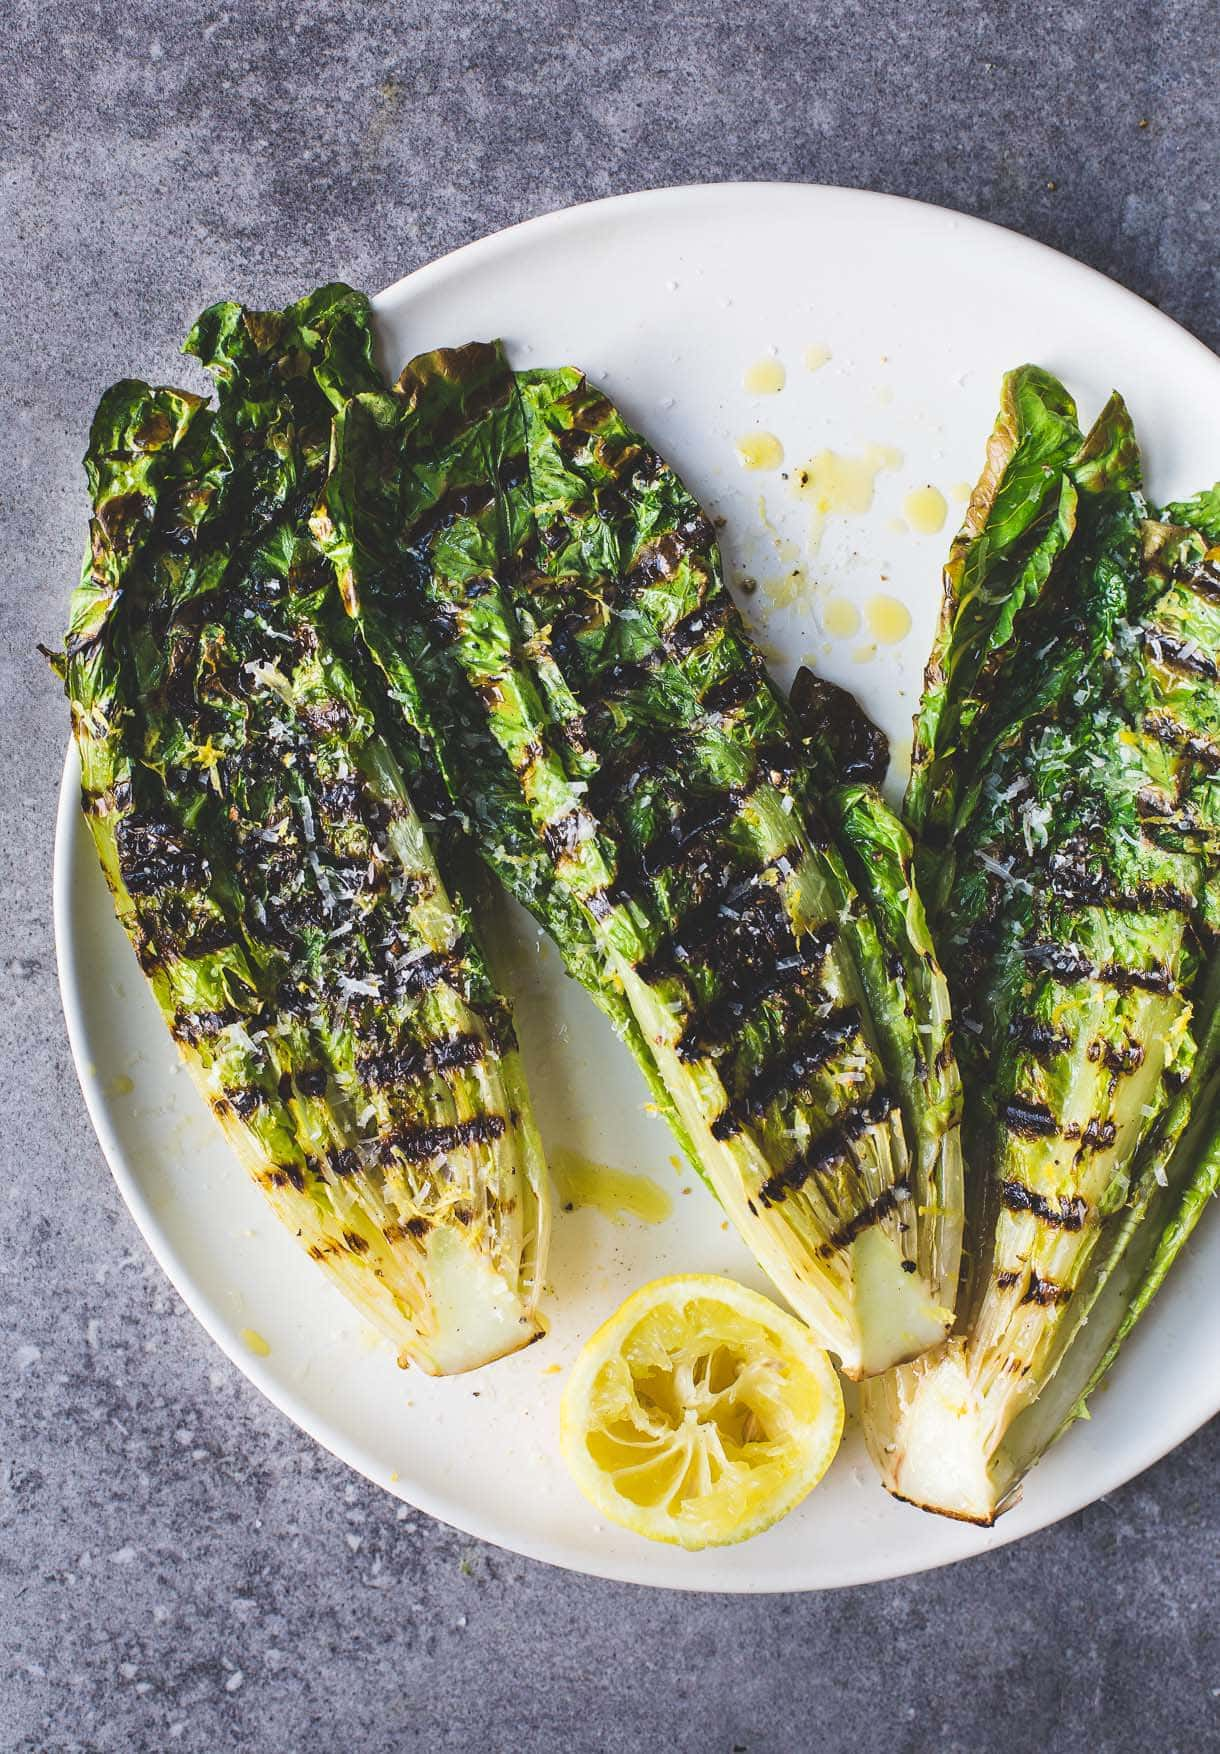 Simple Italian Grilled Romaine Lettuce Salad on a plate with half lemon